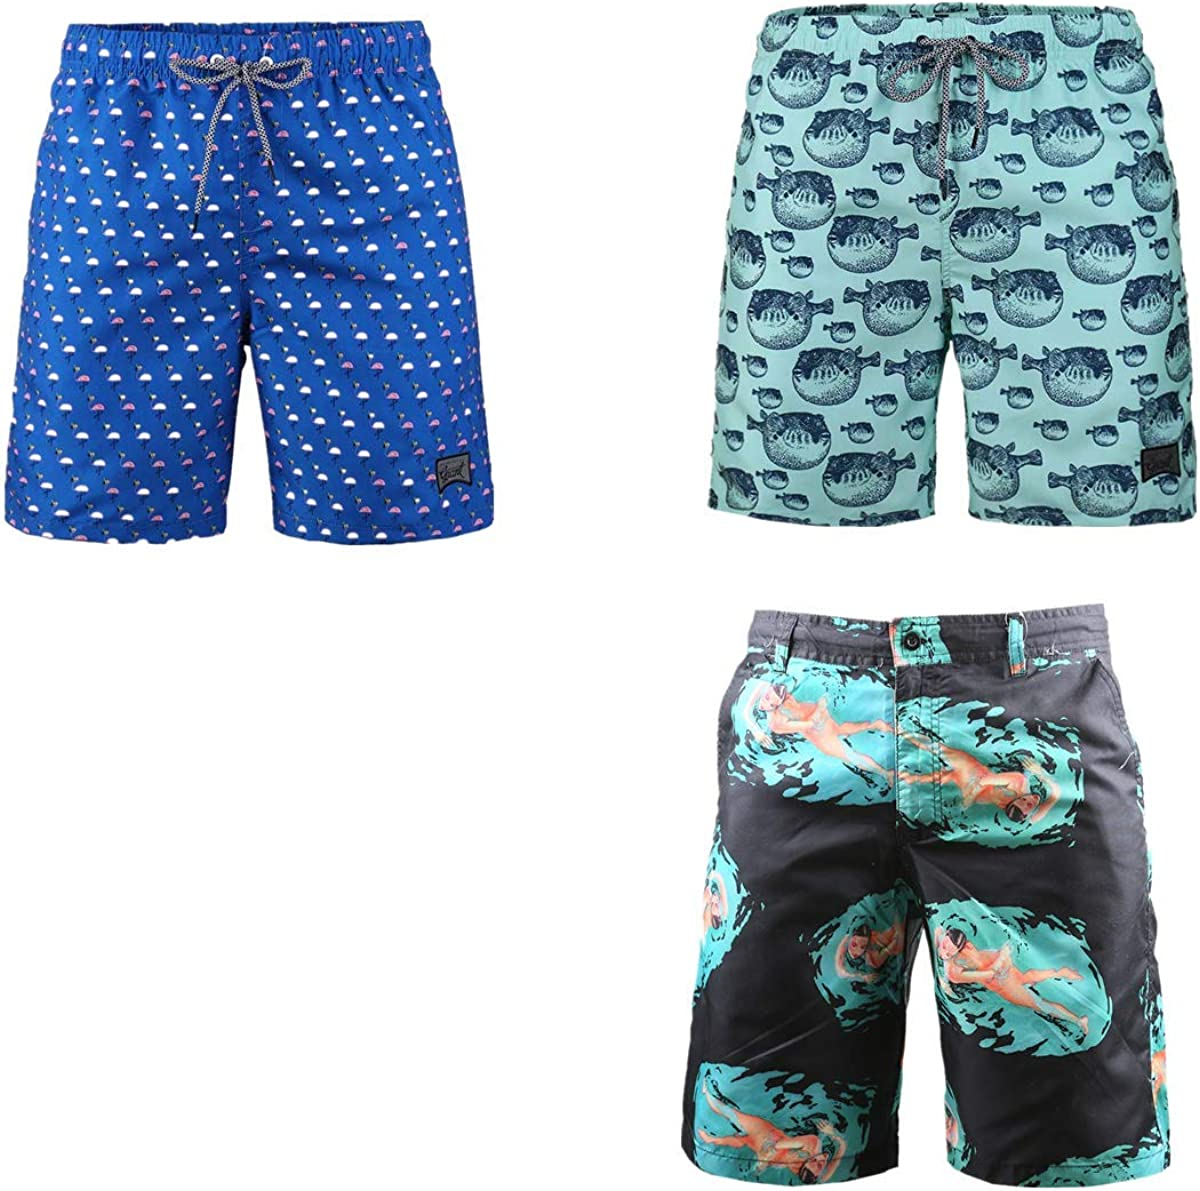 Charlotte Mall online shop 3-Pack Men's Board Shorts Drawstring Vacation for Swimming Beach